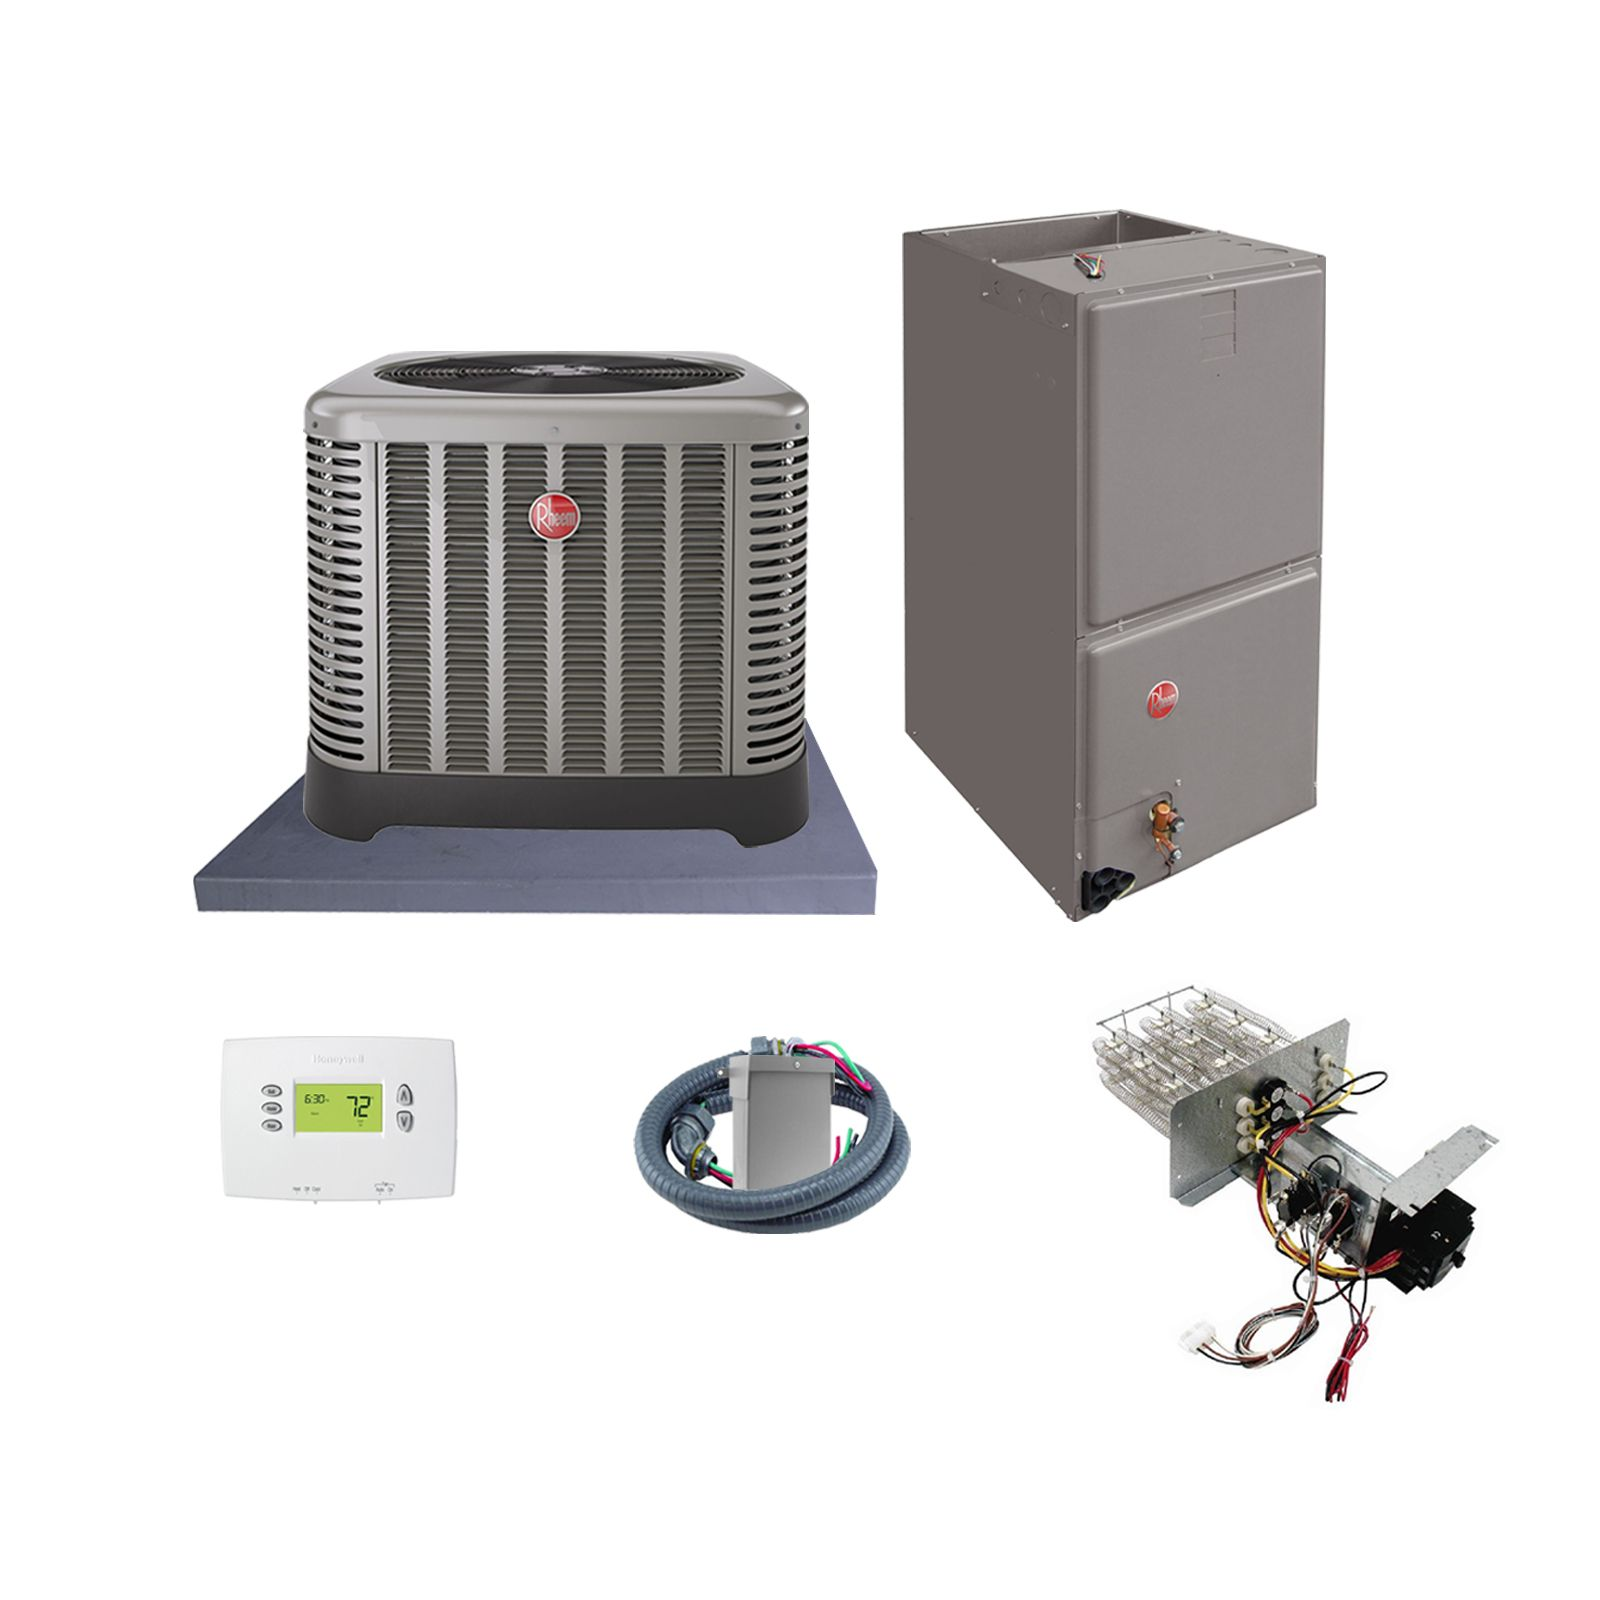 Rheem (AHRI 7492673) 5 Ton, 14.5 SEER/12 EER Classic Series, Horizontal Air Conditioner Split System and Install Kit